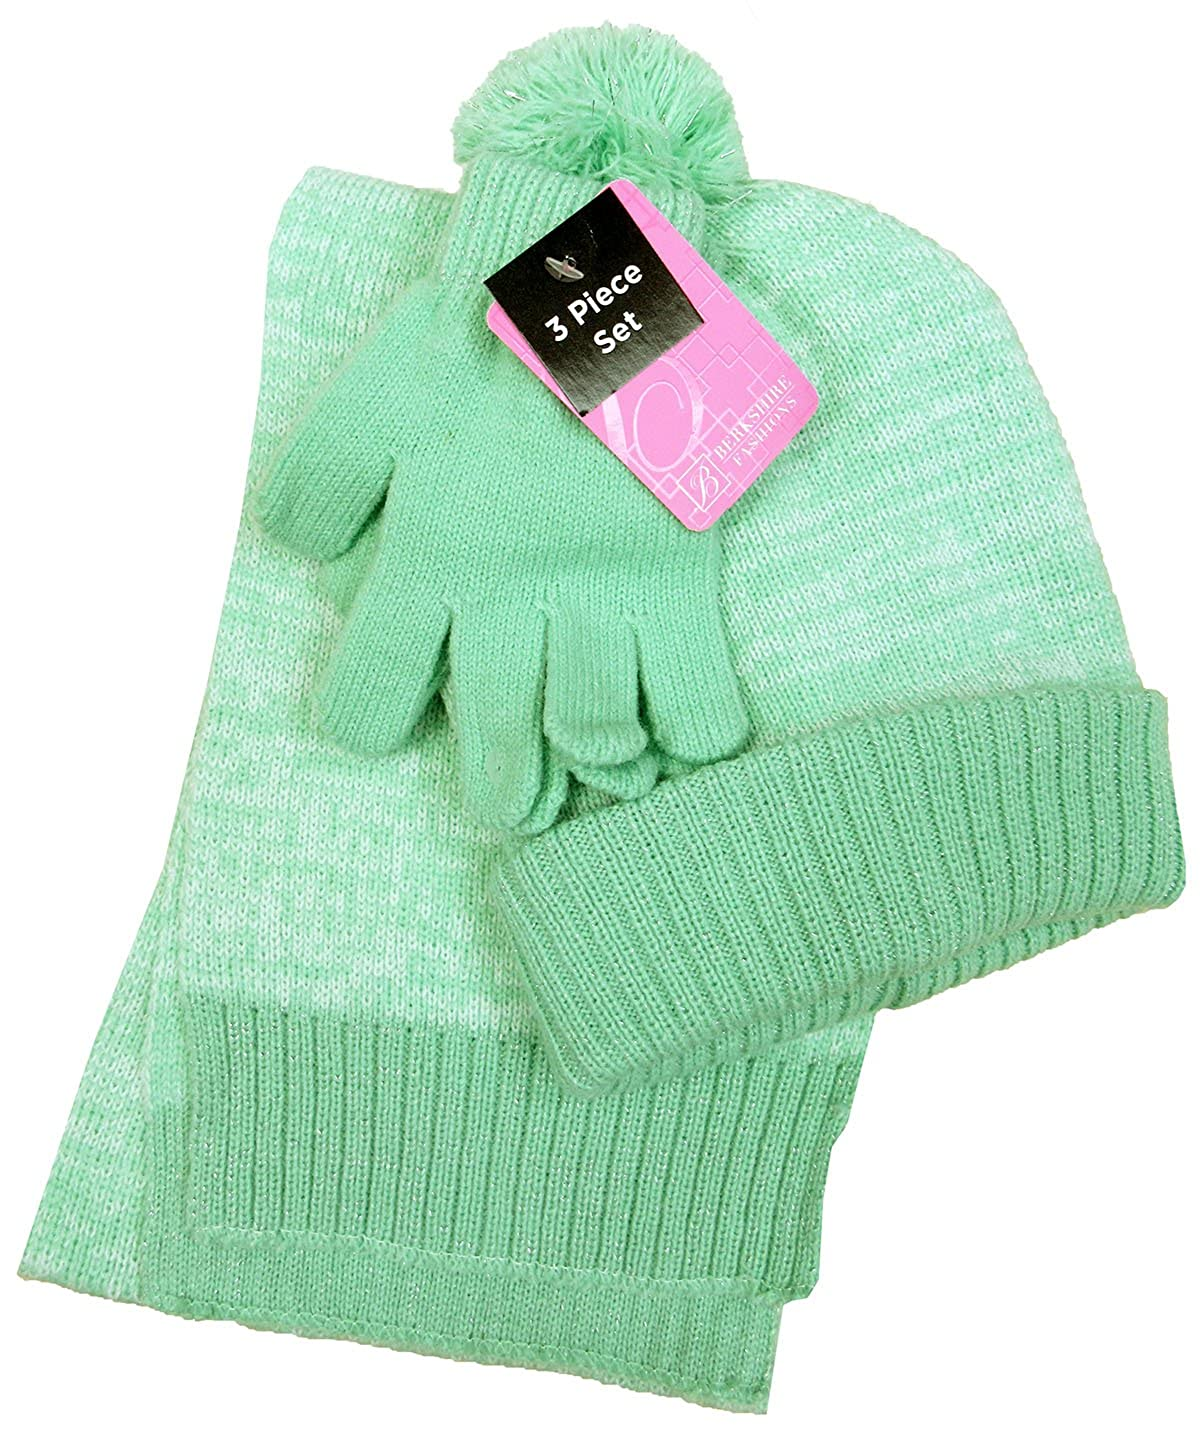 Knitted Hat Scarf /& Gloves Set Green One Size Berkshire Girls 3-Pc